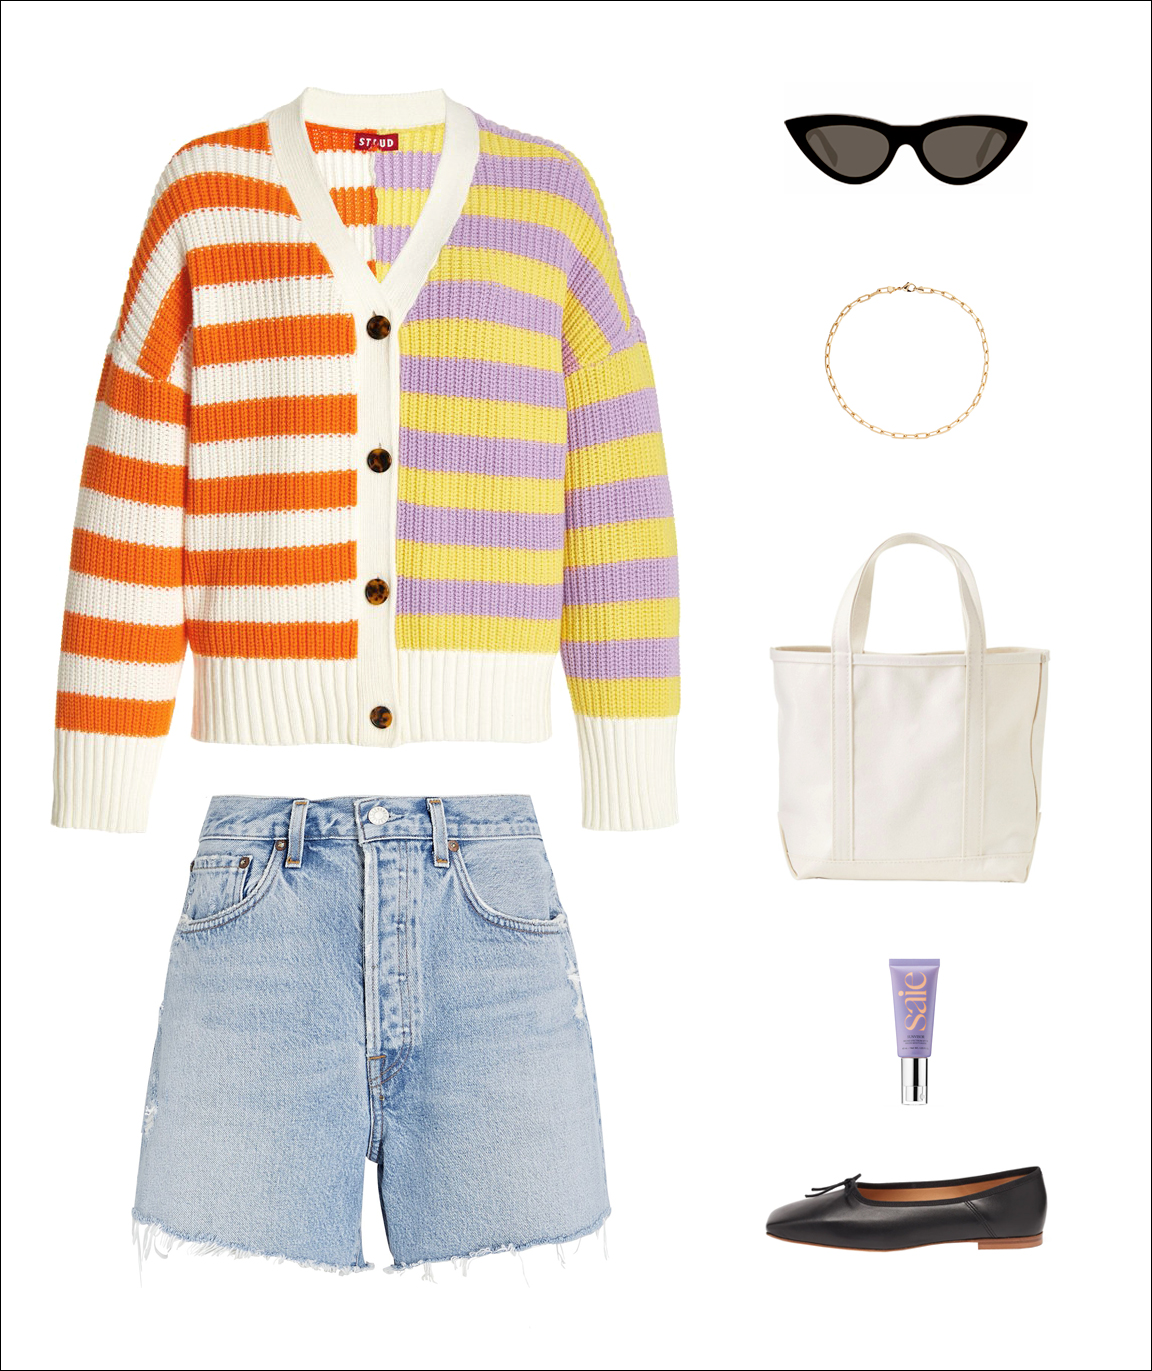 How to wear denim shorts for summer outfit idea with striped cardigan, cat-eye sunglasses, paper clip chain necklace, LL Bean canvas tote bag, cut-off shorts, black ballet flats, dewy tinted SPF moisturizer